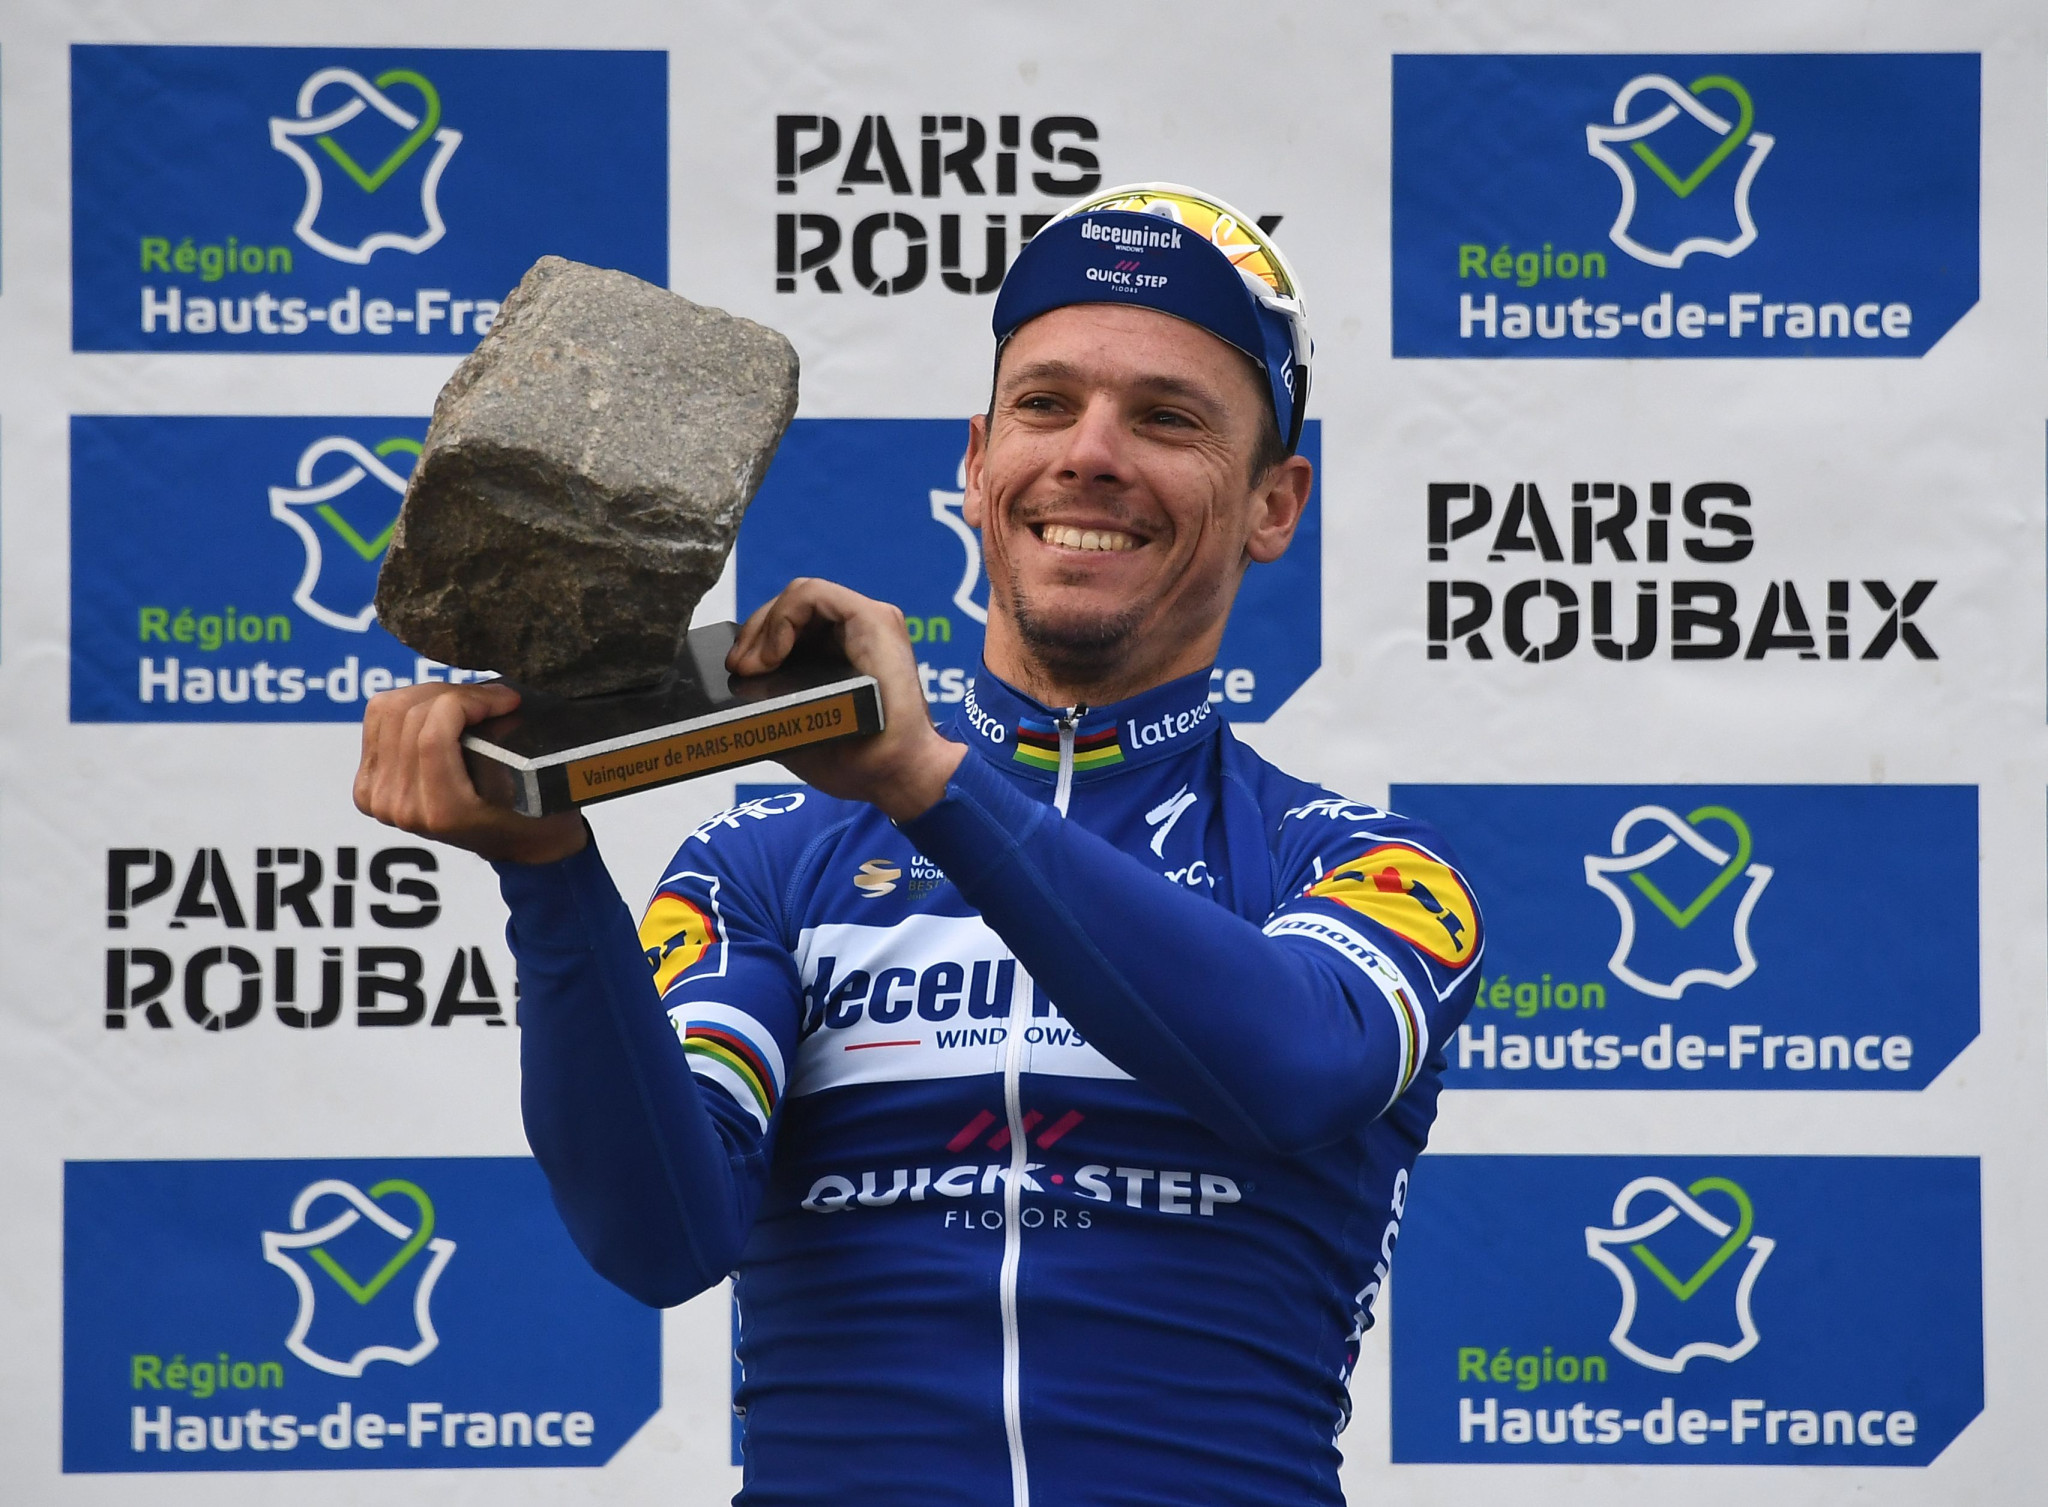 Gilbert looking to retain title among strong field at 2021 Paris-Roubaix race